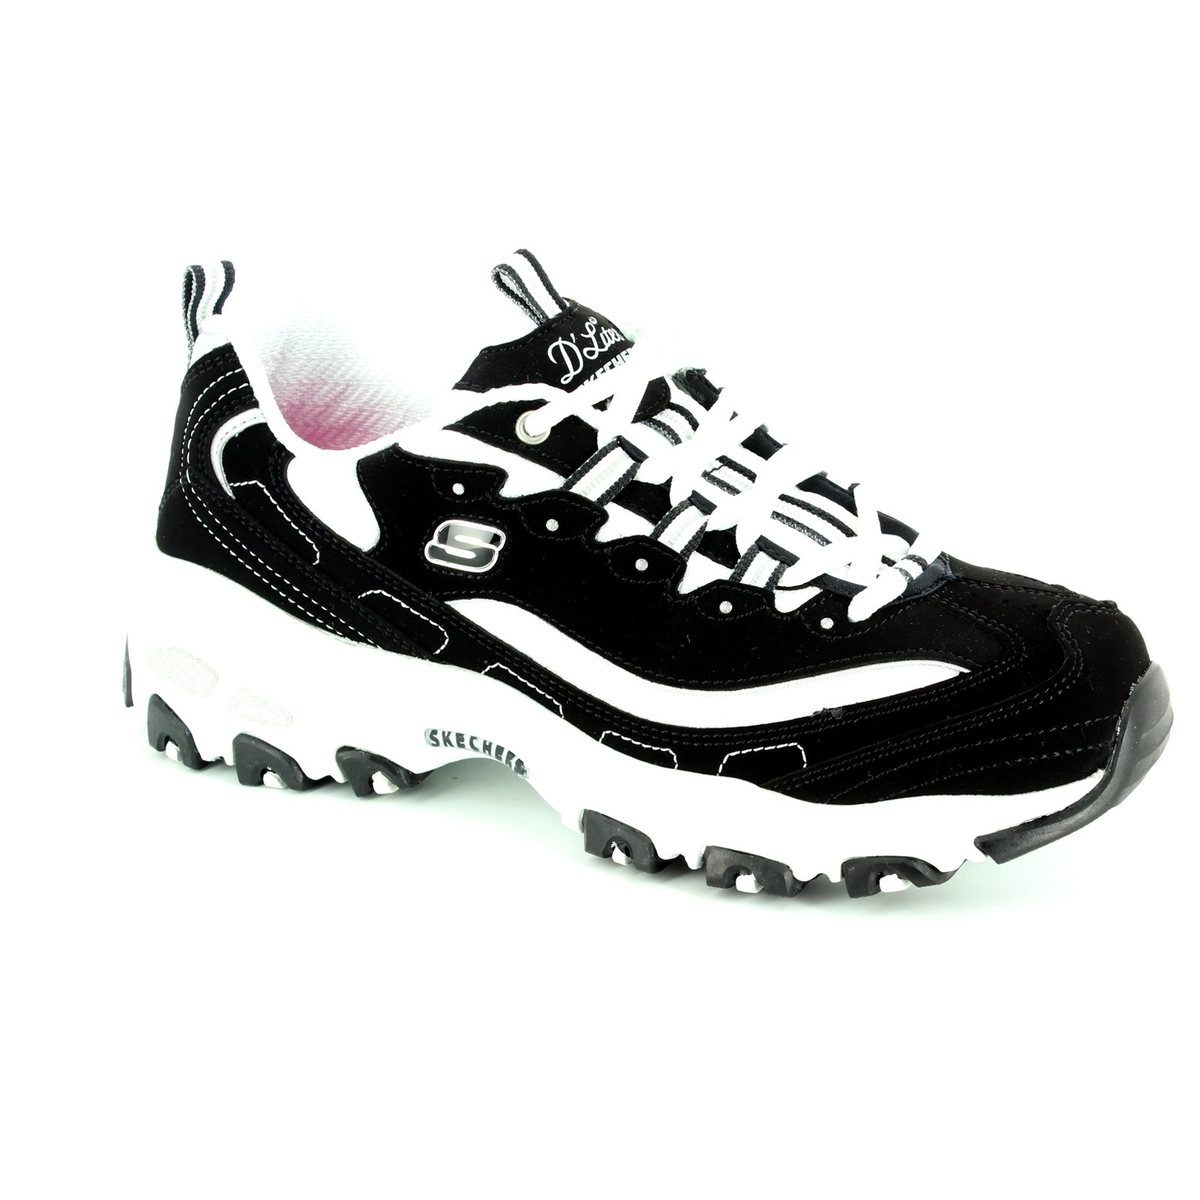 47911f26b1590 Skechers Lacing Shoes - Black white - 11930 SPORT DLITES